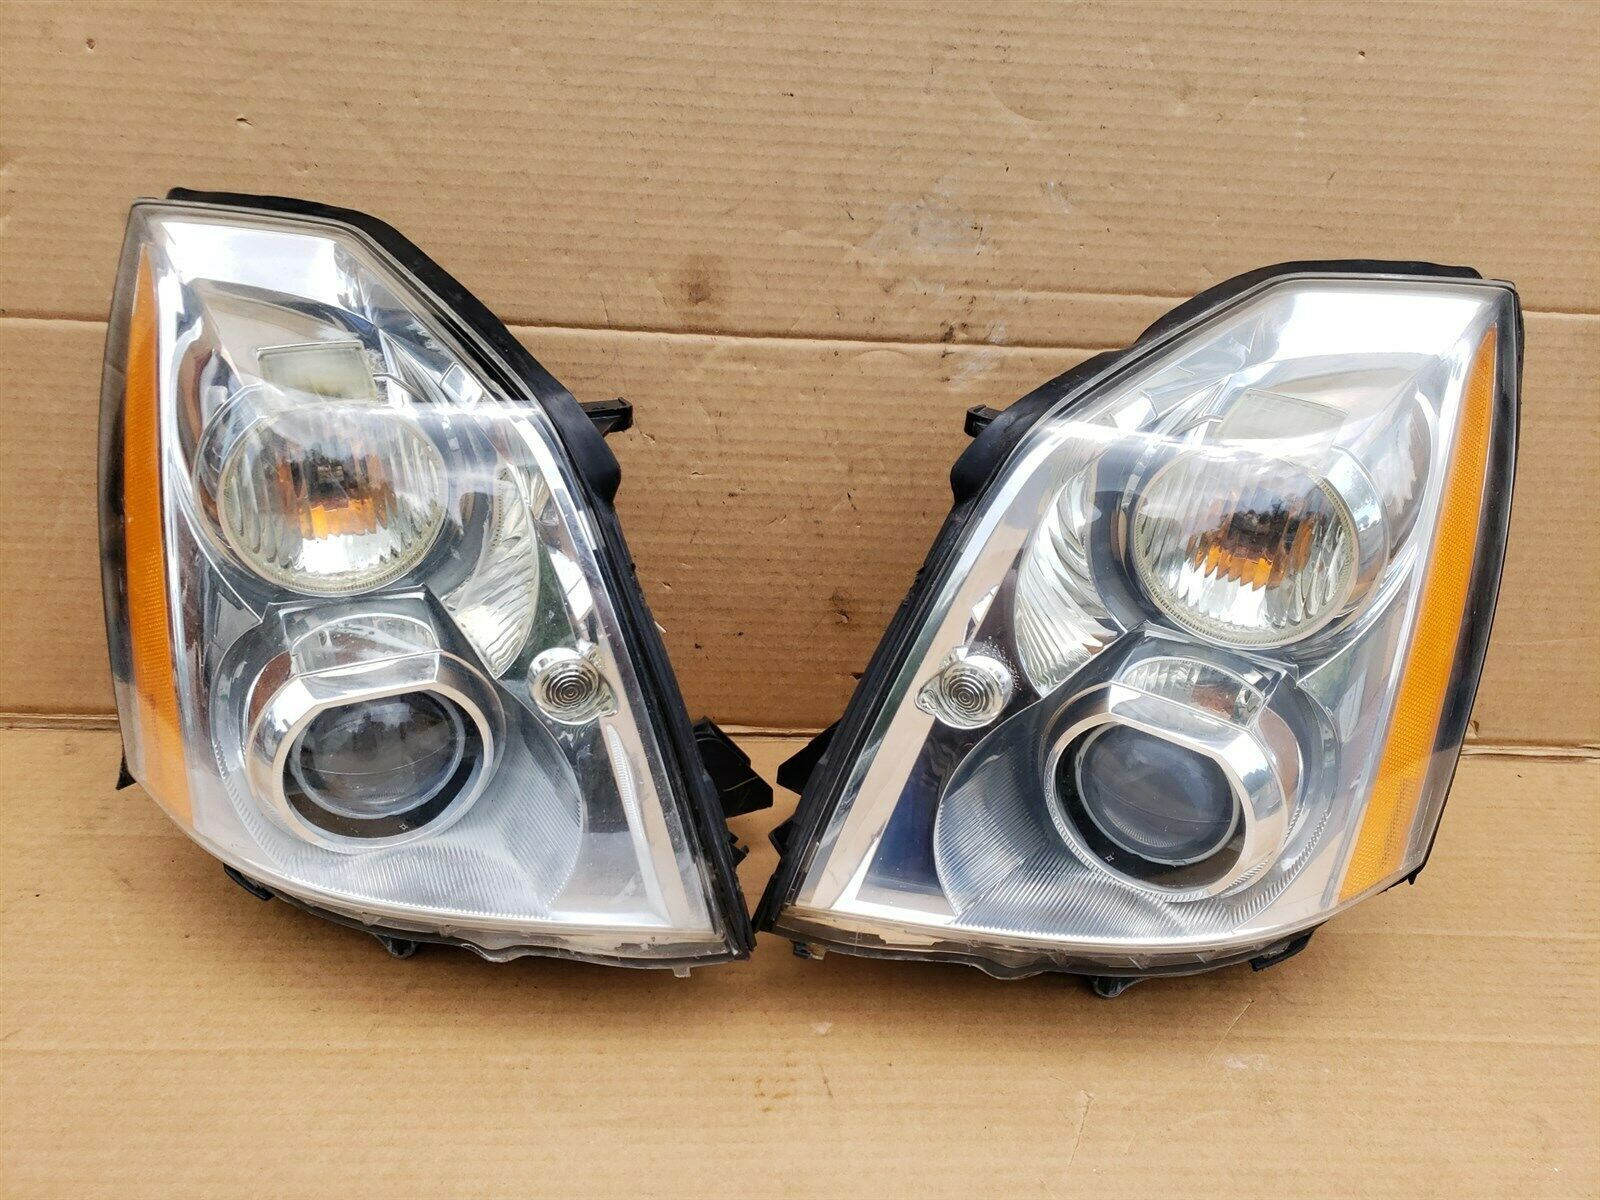 06-11 Cadillac DTS HID Xenon Headlight Head Light Lamp Set LH & RH -POLISHED